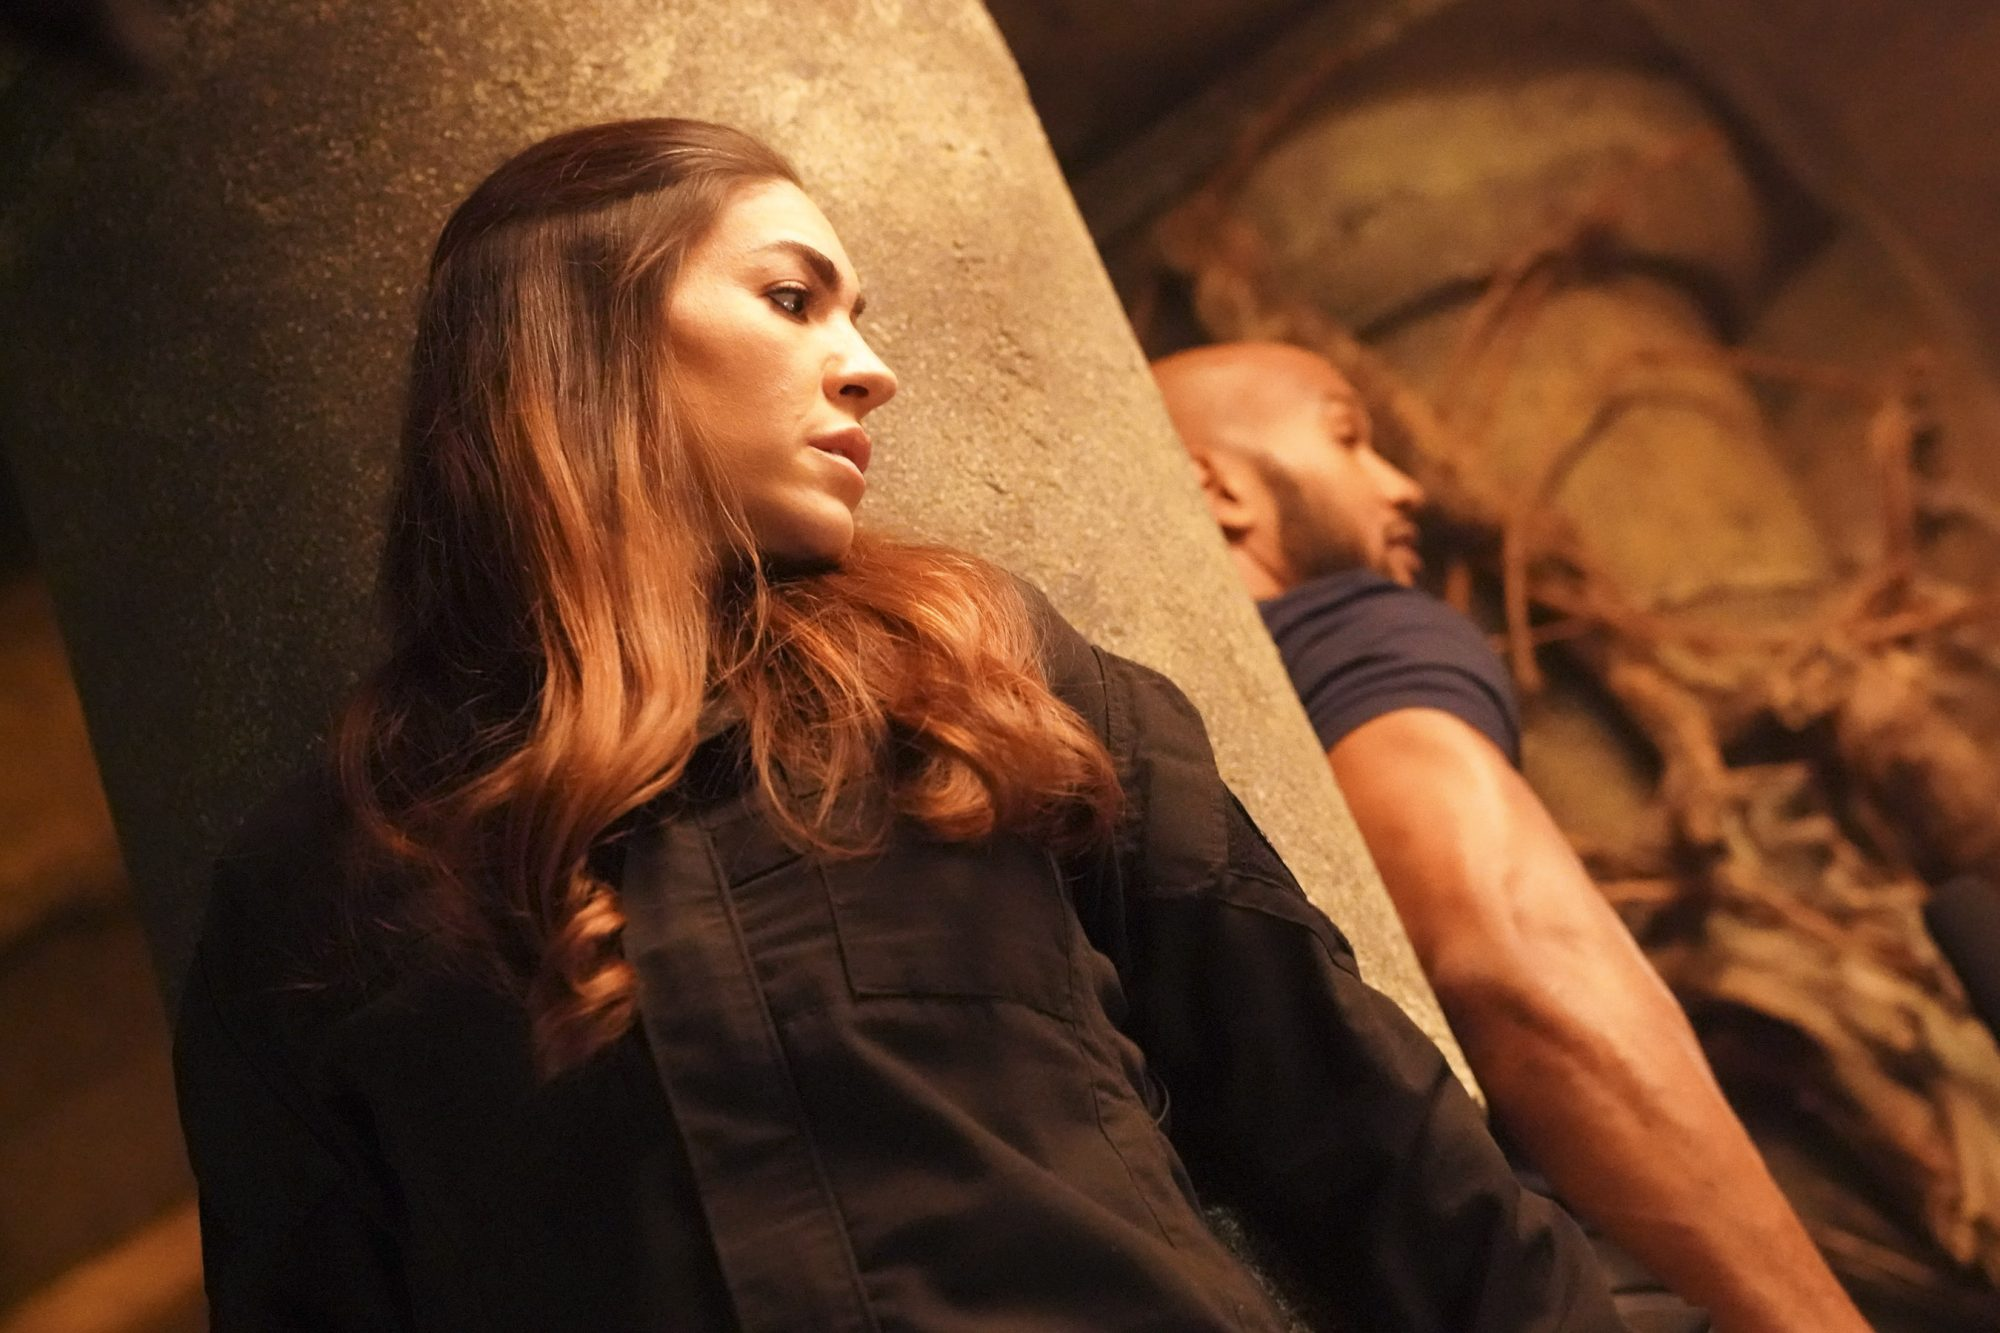 """MARVEL'S AGENTS OF S.H.I.E.L.D. - """"From the Ashes"""" - Out of answers and running out of time, the agents must face the ghosts of their past in order to move forward on """"Marvel's Agents of S.H.I.E.L.D.,"""" airing FRIDAY, JULY 26 (8:00-9:00 p.m. EDT), on ABC. (ABC/Mitch Haaseth) NATALIA CORDOVA-BUCKLEY"""